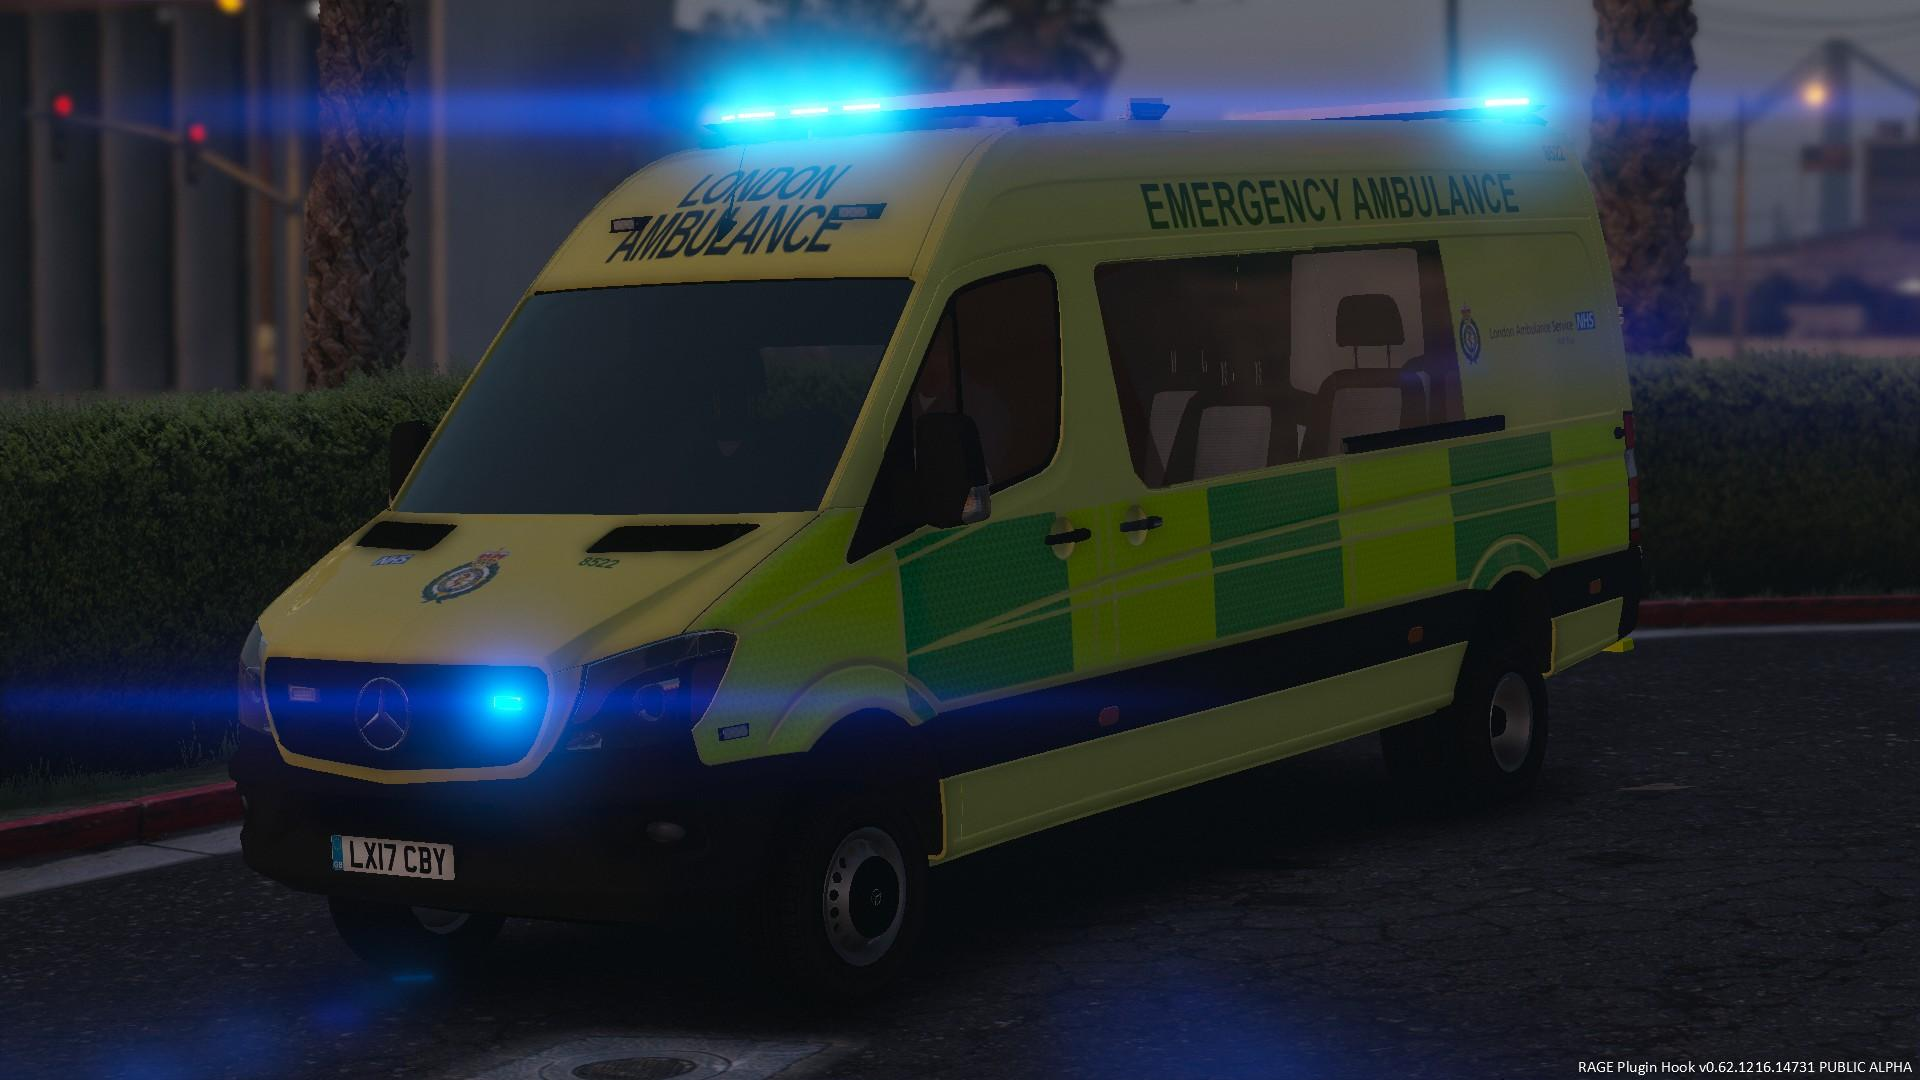 2017 london ambulance service mercedes benz sprinter for Mercedes benz brasil